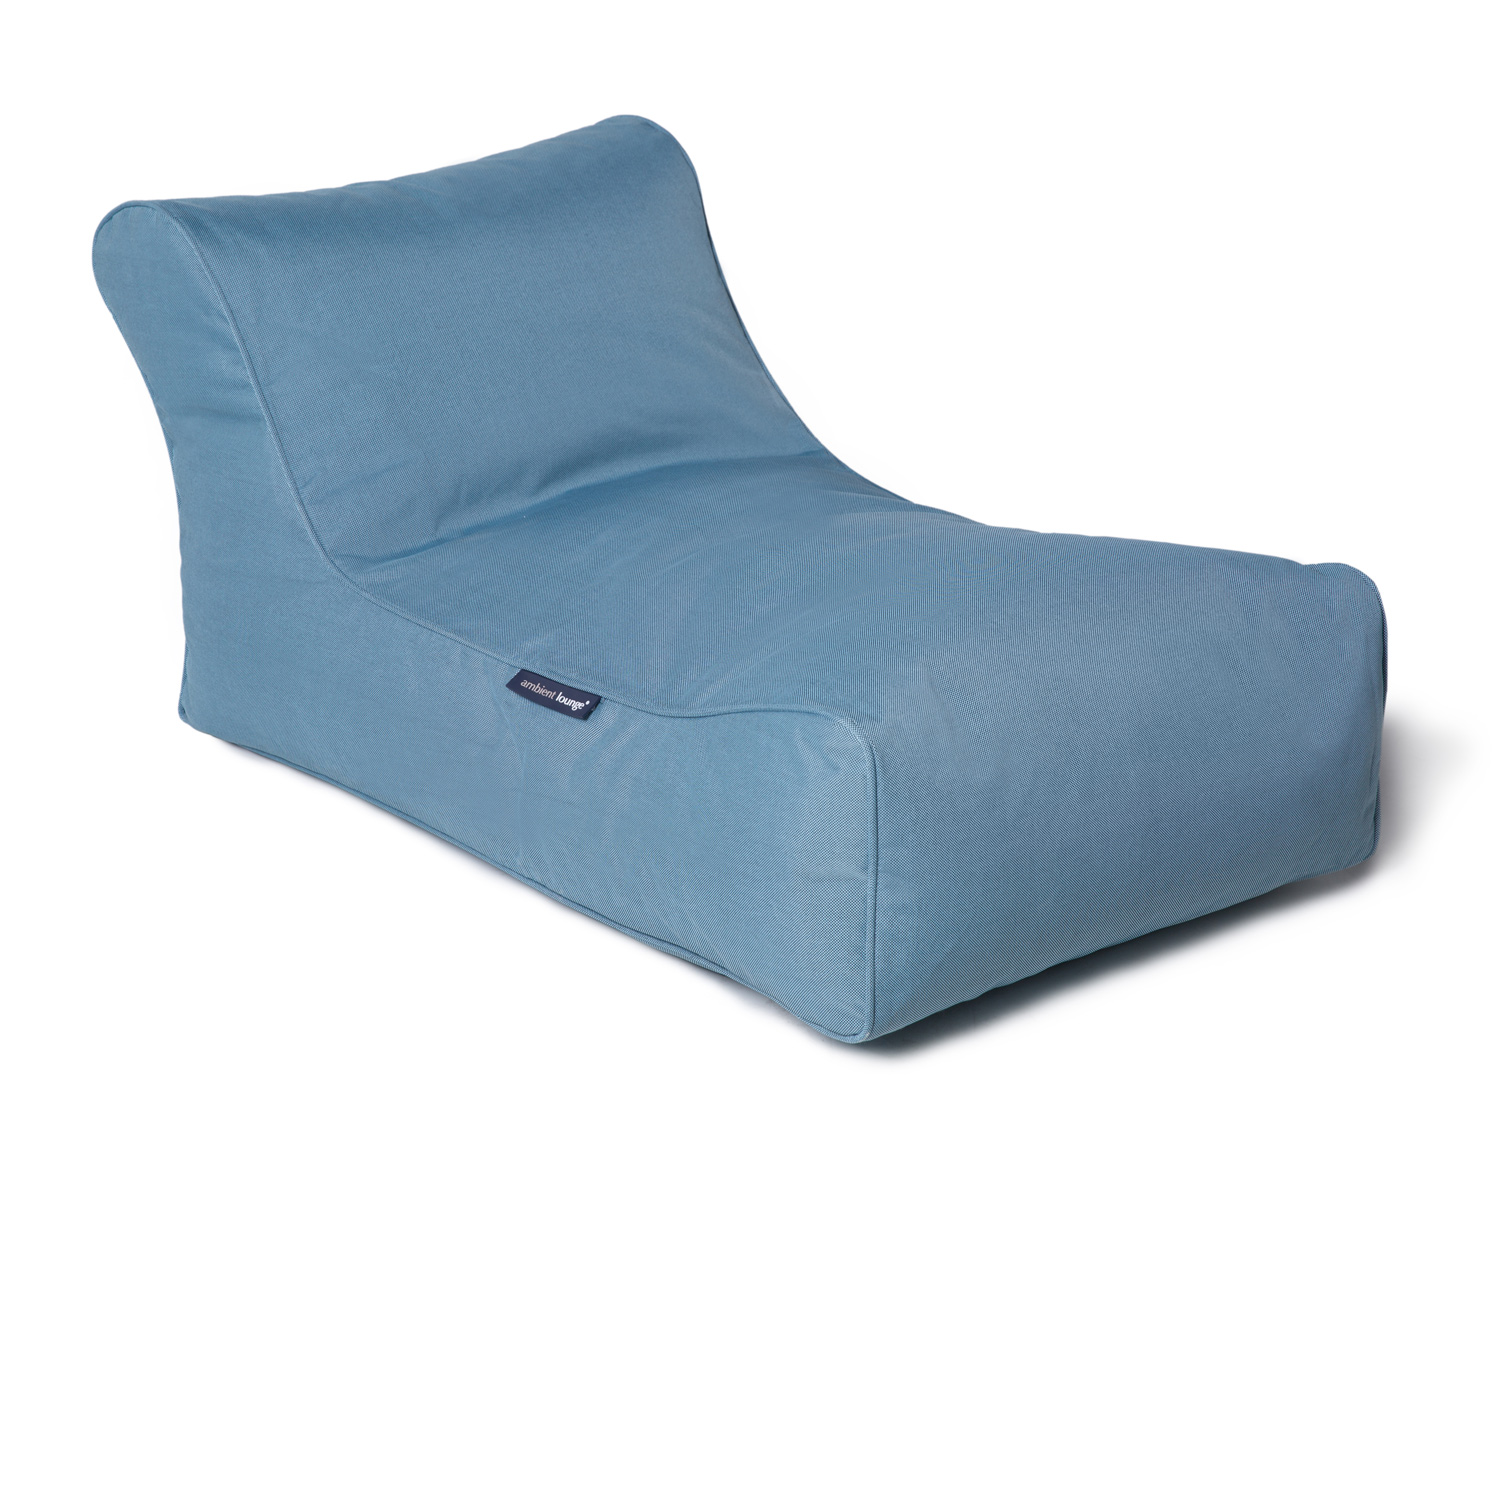 Outdoor bean bags studio lounger blue skye eclipse for Bean bag chaise lounge